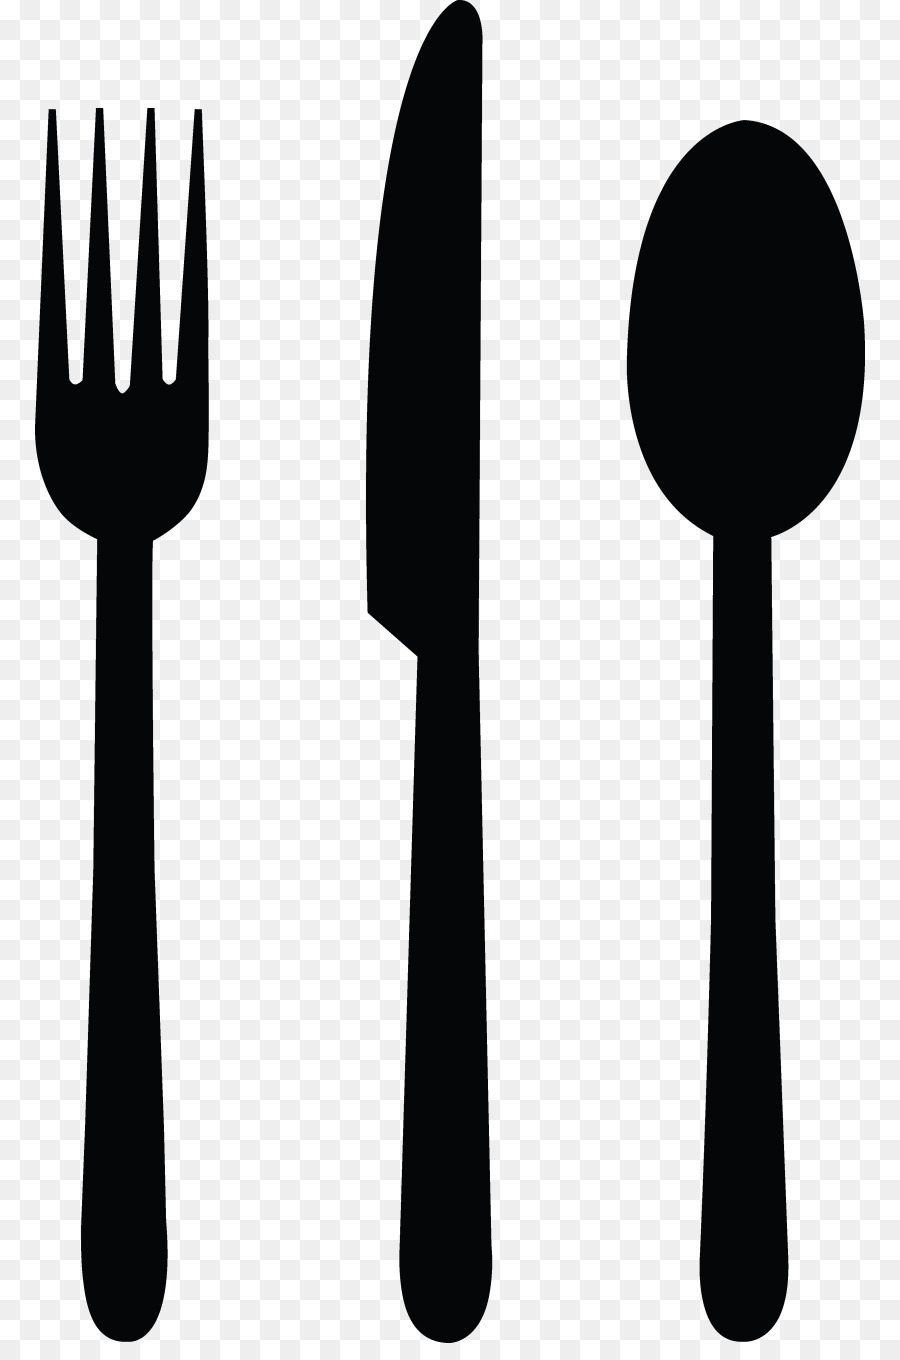 knife fork spoon cutlery clip art spoon and fork png download rh kisspng com vintage knife and fork clipart white knife and fork clipart